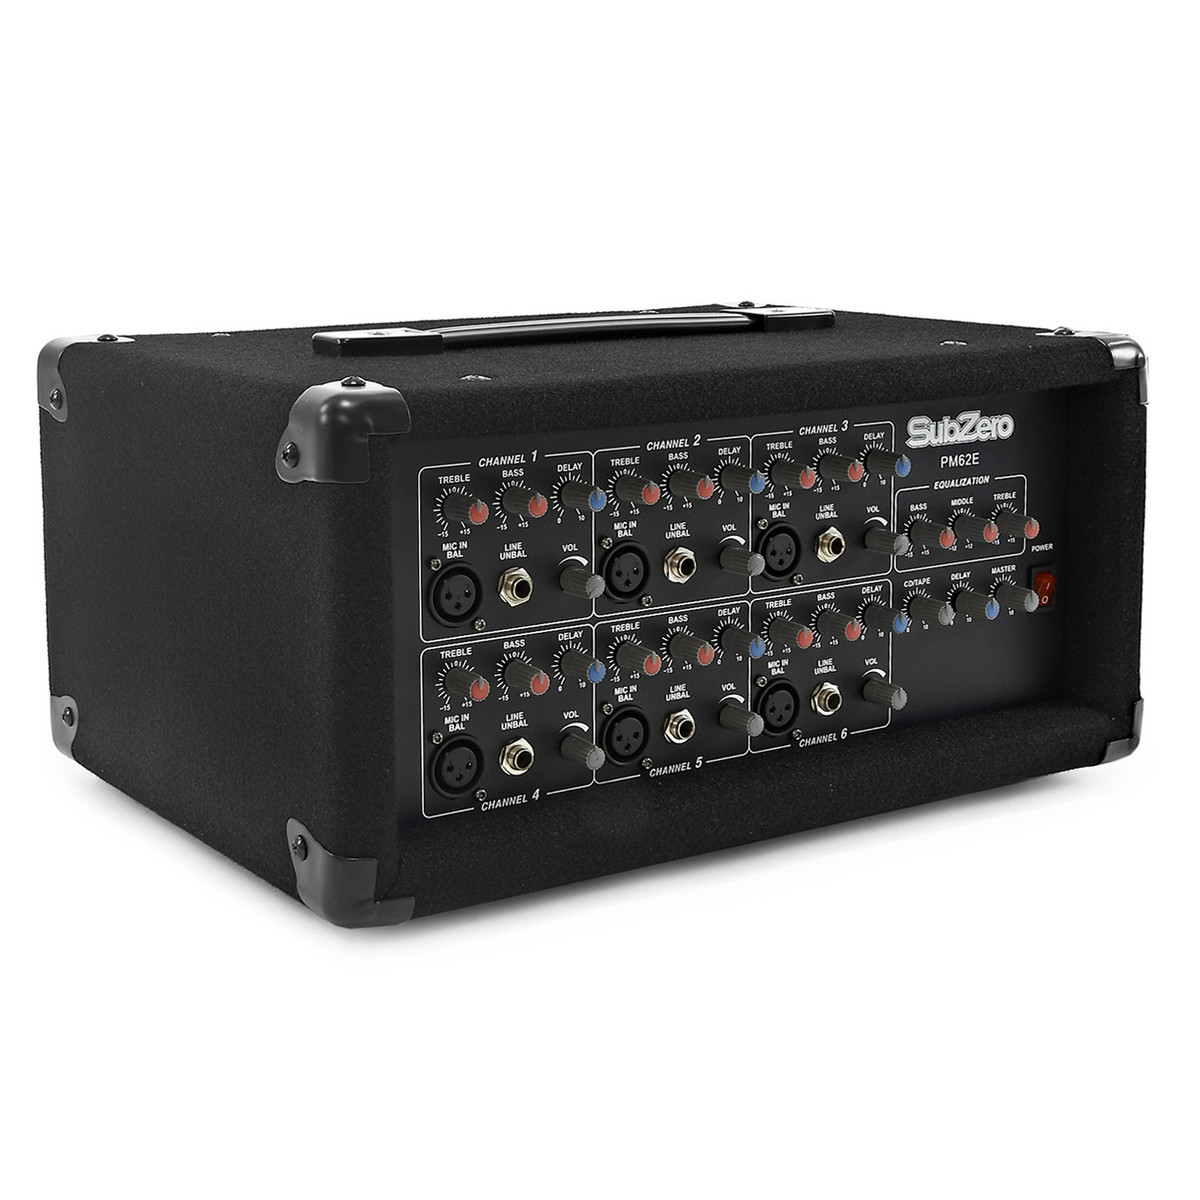 subzero 300w pa system with fx mixer and speakers b stock at. Black Bedroom Furniture Sets. Home Design Ideas